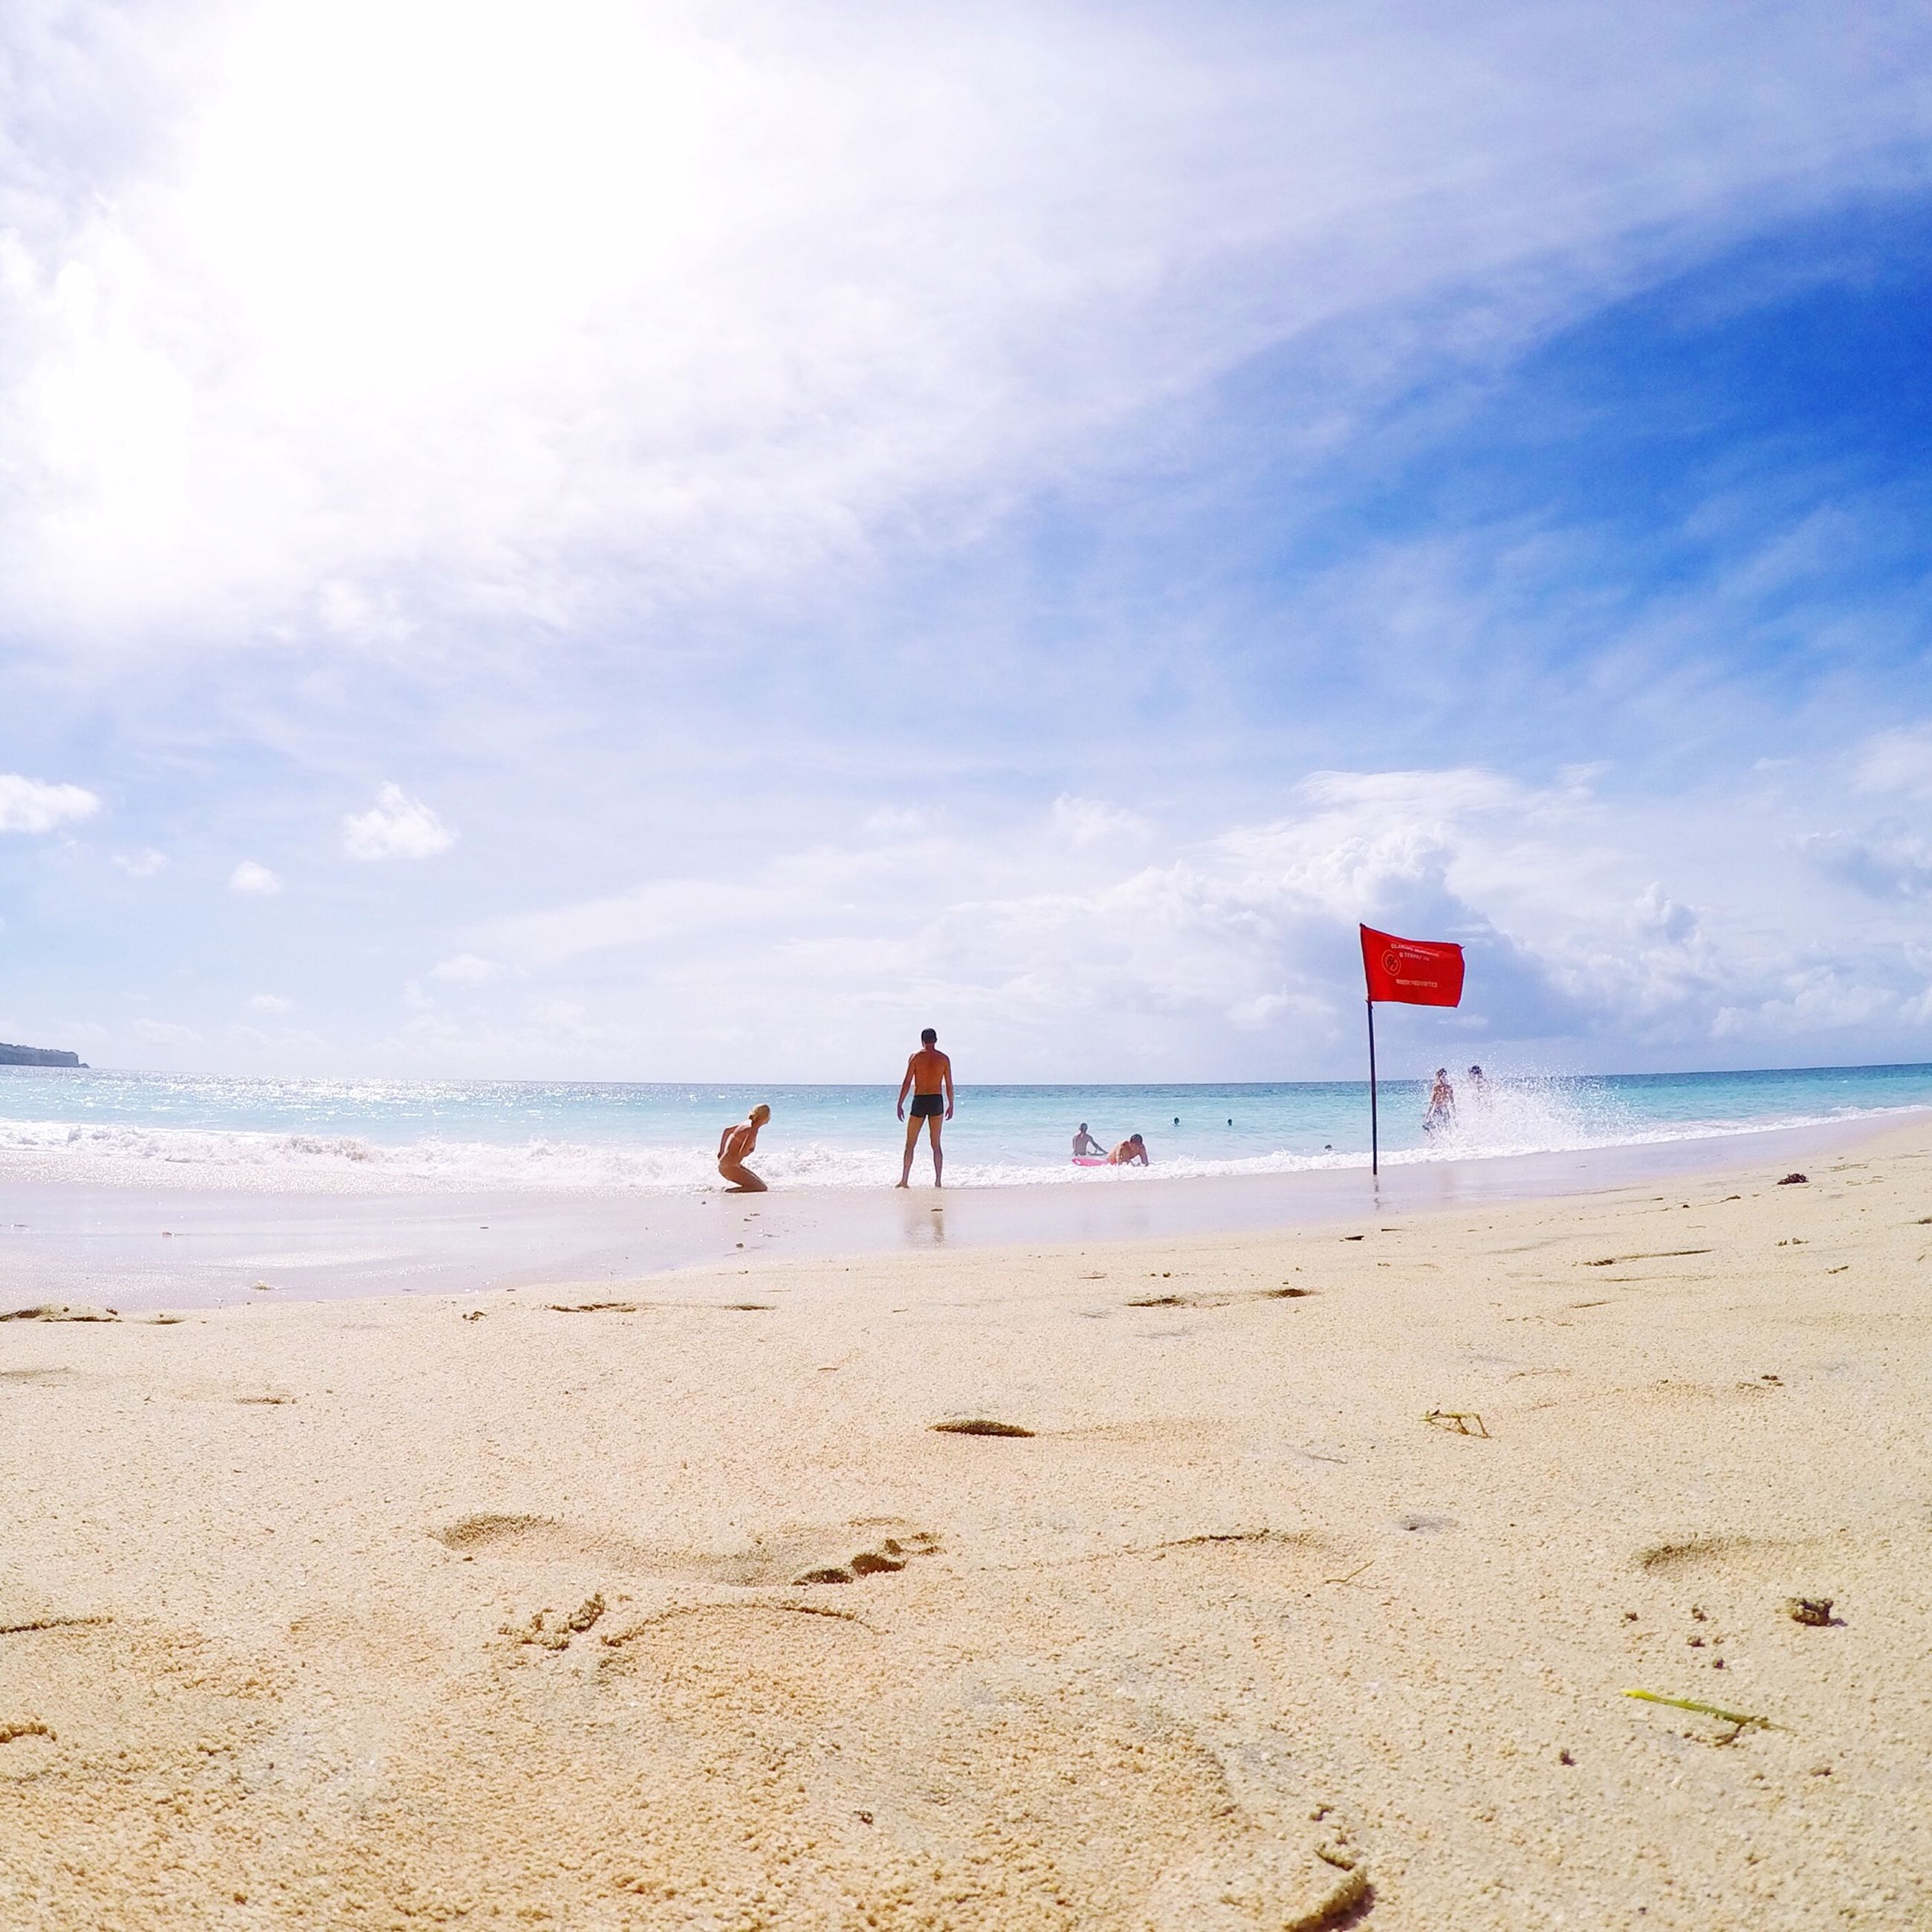 beach, sea, sand, horizon over water, shore, water, sky, leisure activity, lifestyles, vacations, tranquility, scenics, tranquil scene, beauty in nature, enjoyment, men, cloud - sky, nature, summer